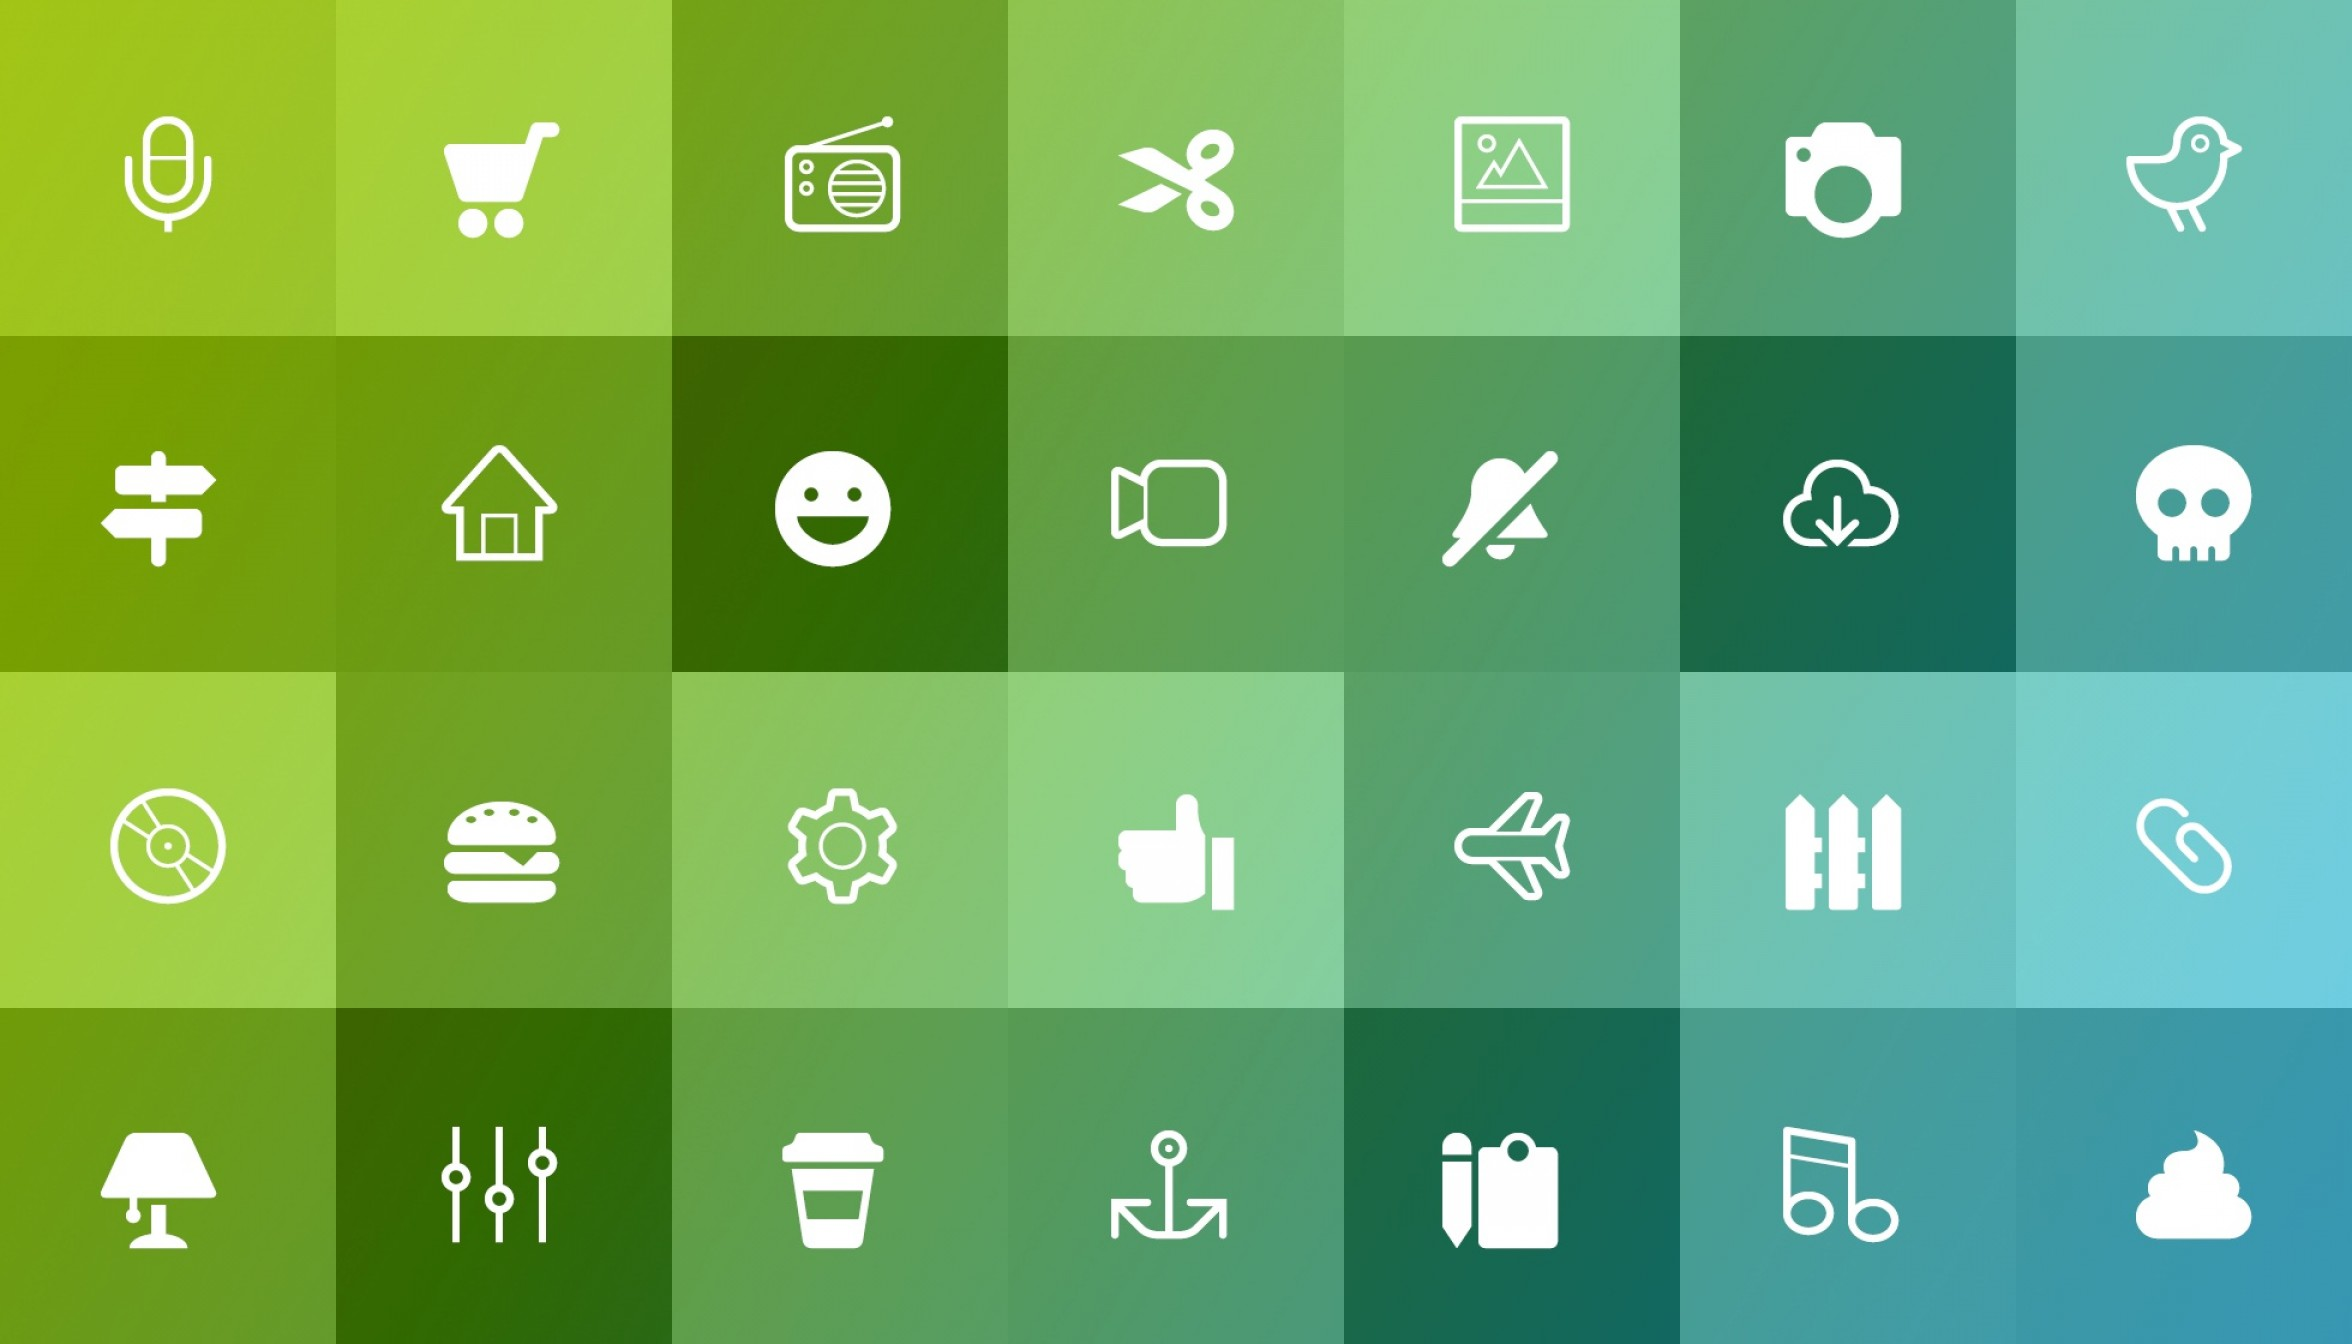 Vector Icons For Designers: Symbolicons Vector Icon Sets For Awesome Designers Developers Sponsor